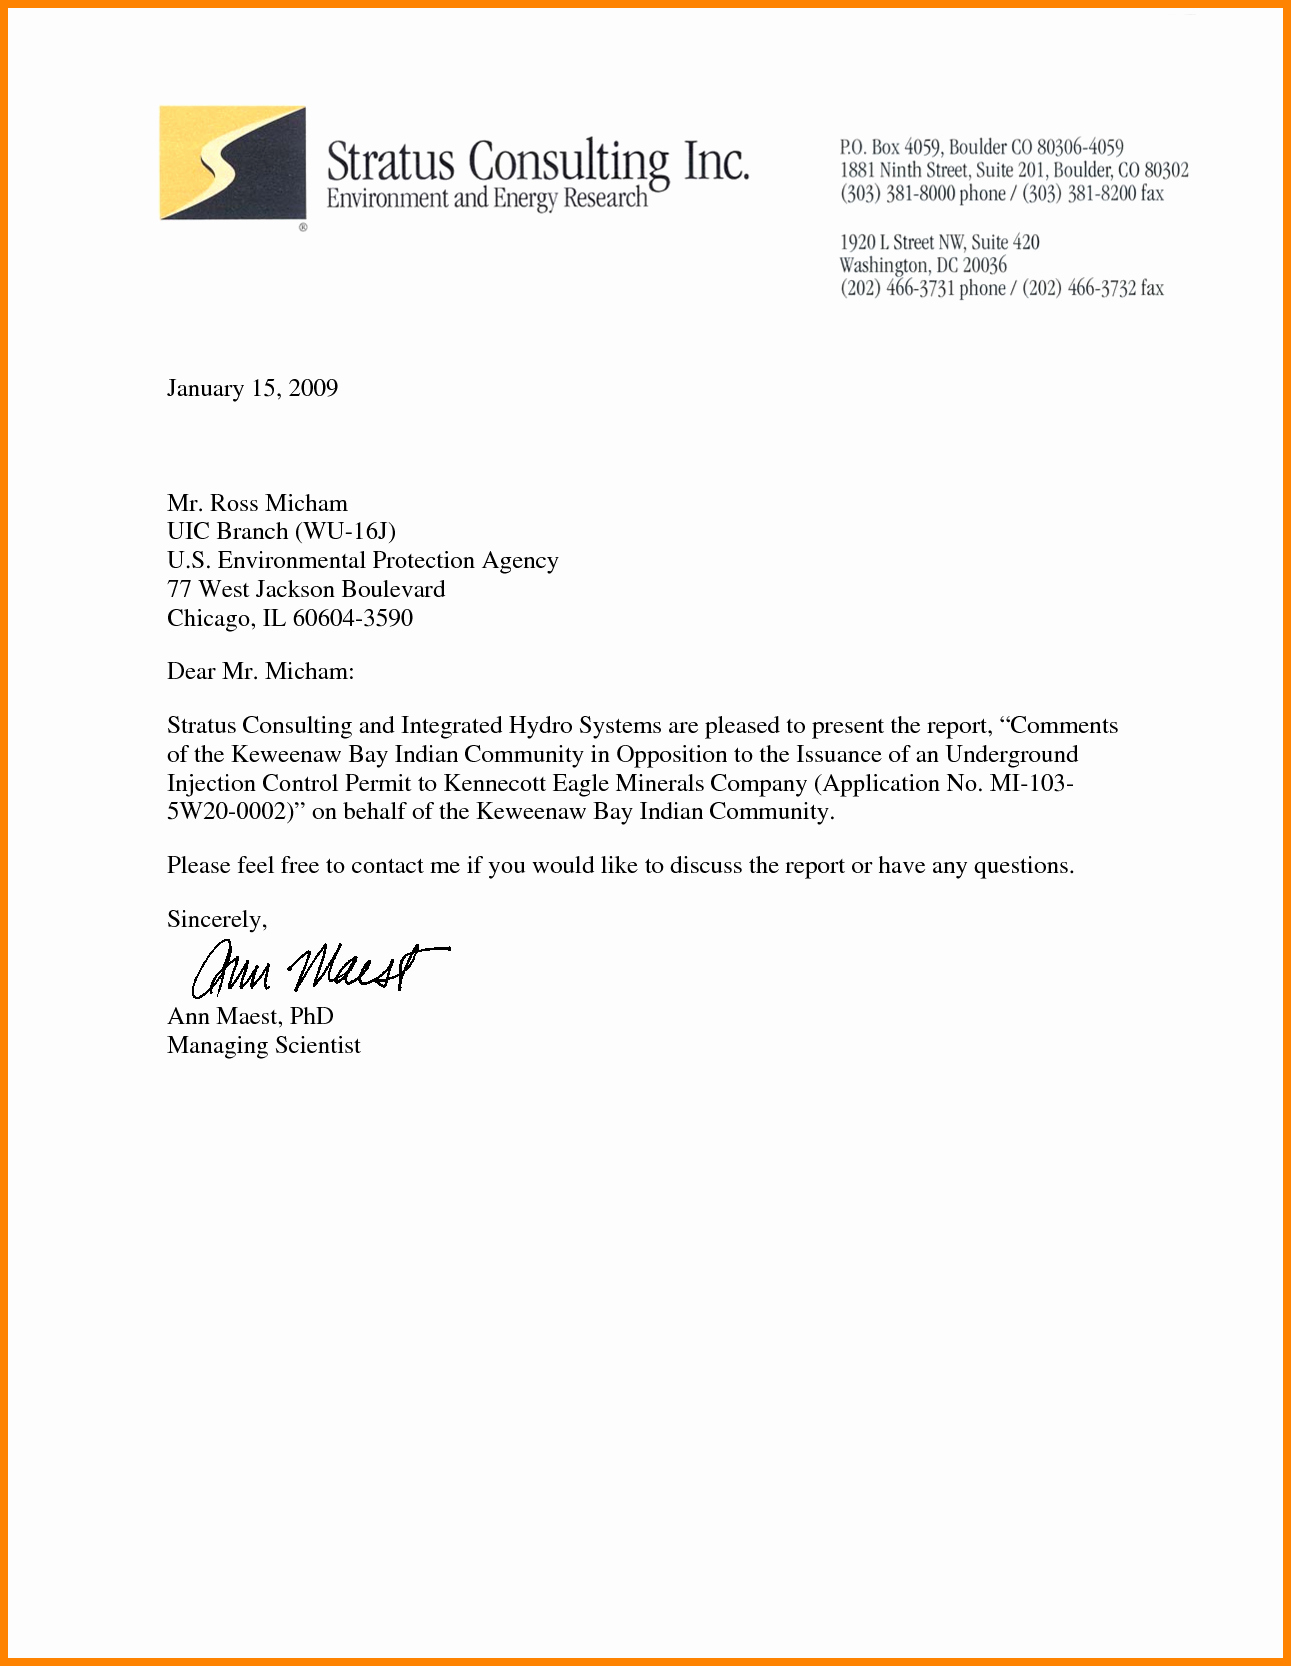 Personal Letterhead Template Free Business Letterhead Format Free - Free Printable Letterhead Templates